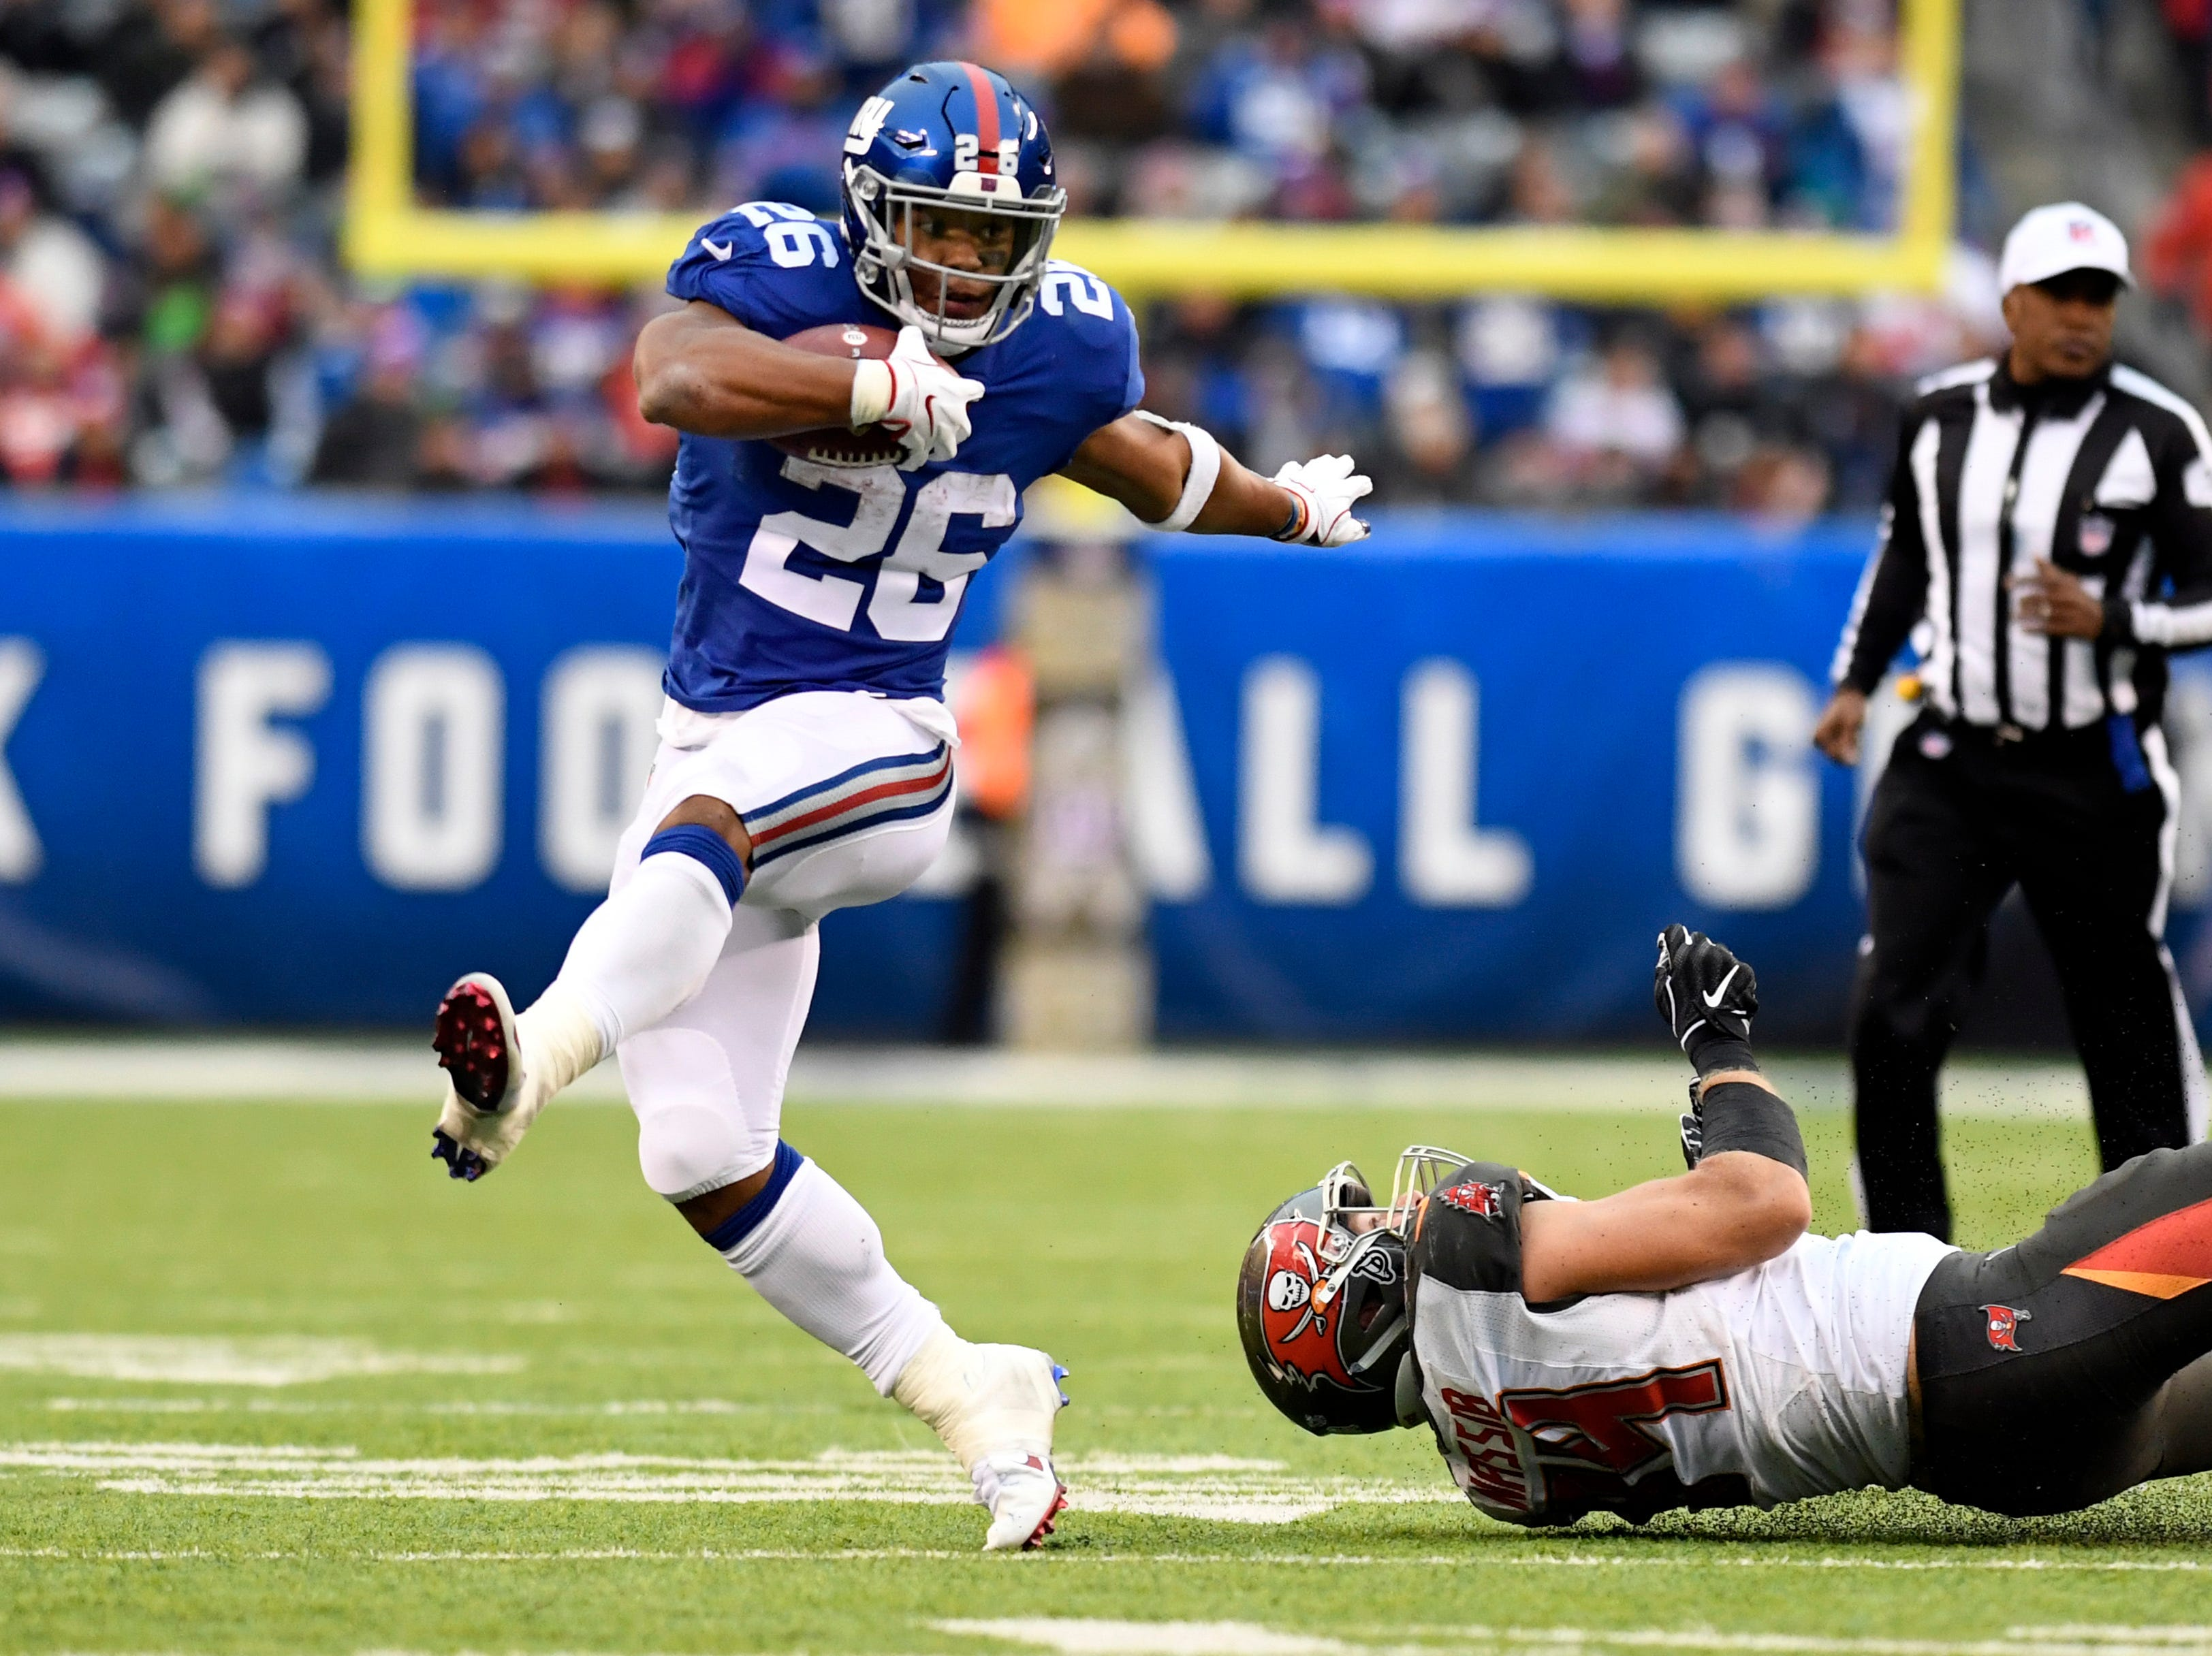 New York Giants running back Saquon Barkley (26) breaks a Tampa Bay Buccaneer tackle in the second half. The Giants defeat the Buccaneers 38-35 on Sunday, Nov. 18, 2018 in East Rutherford.